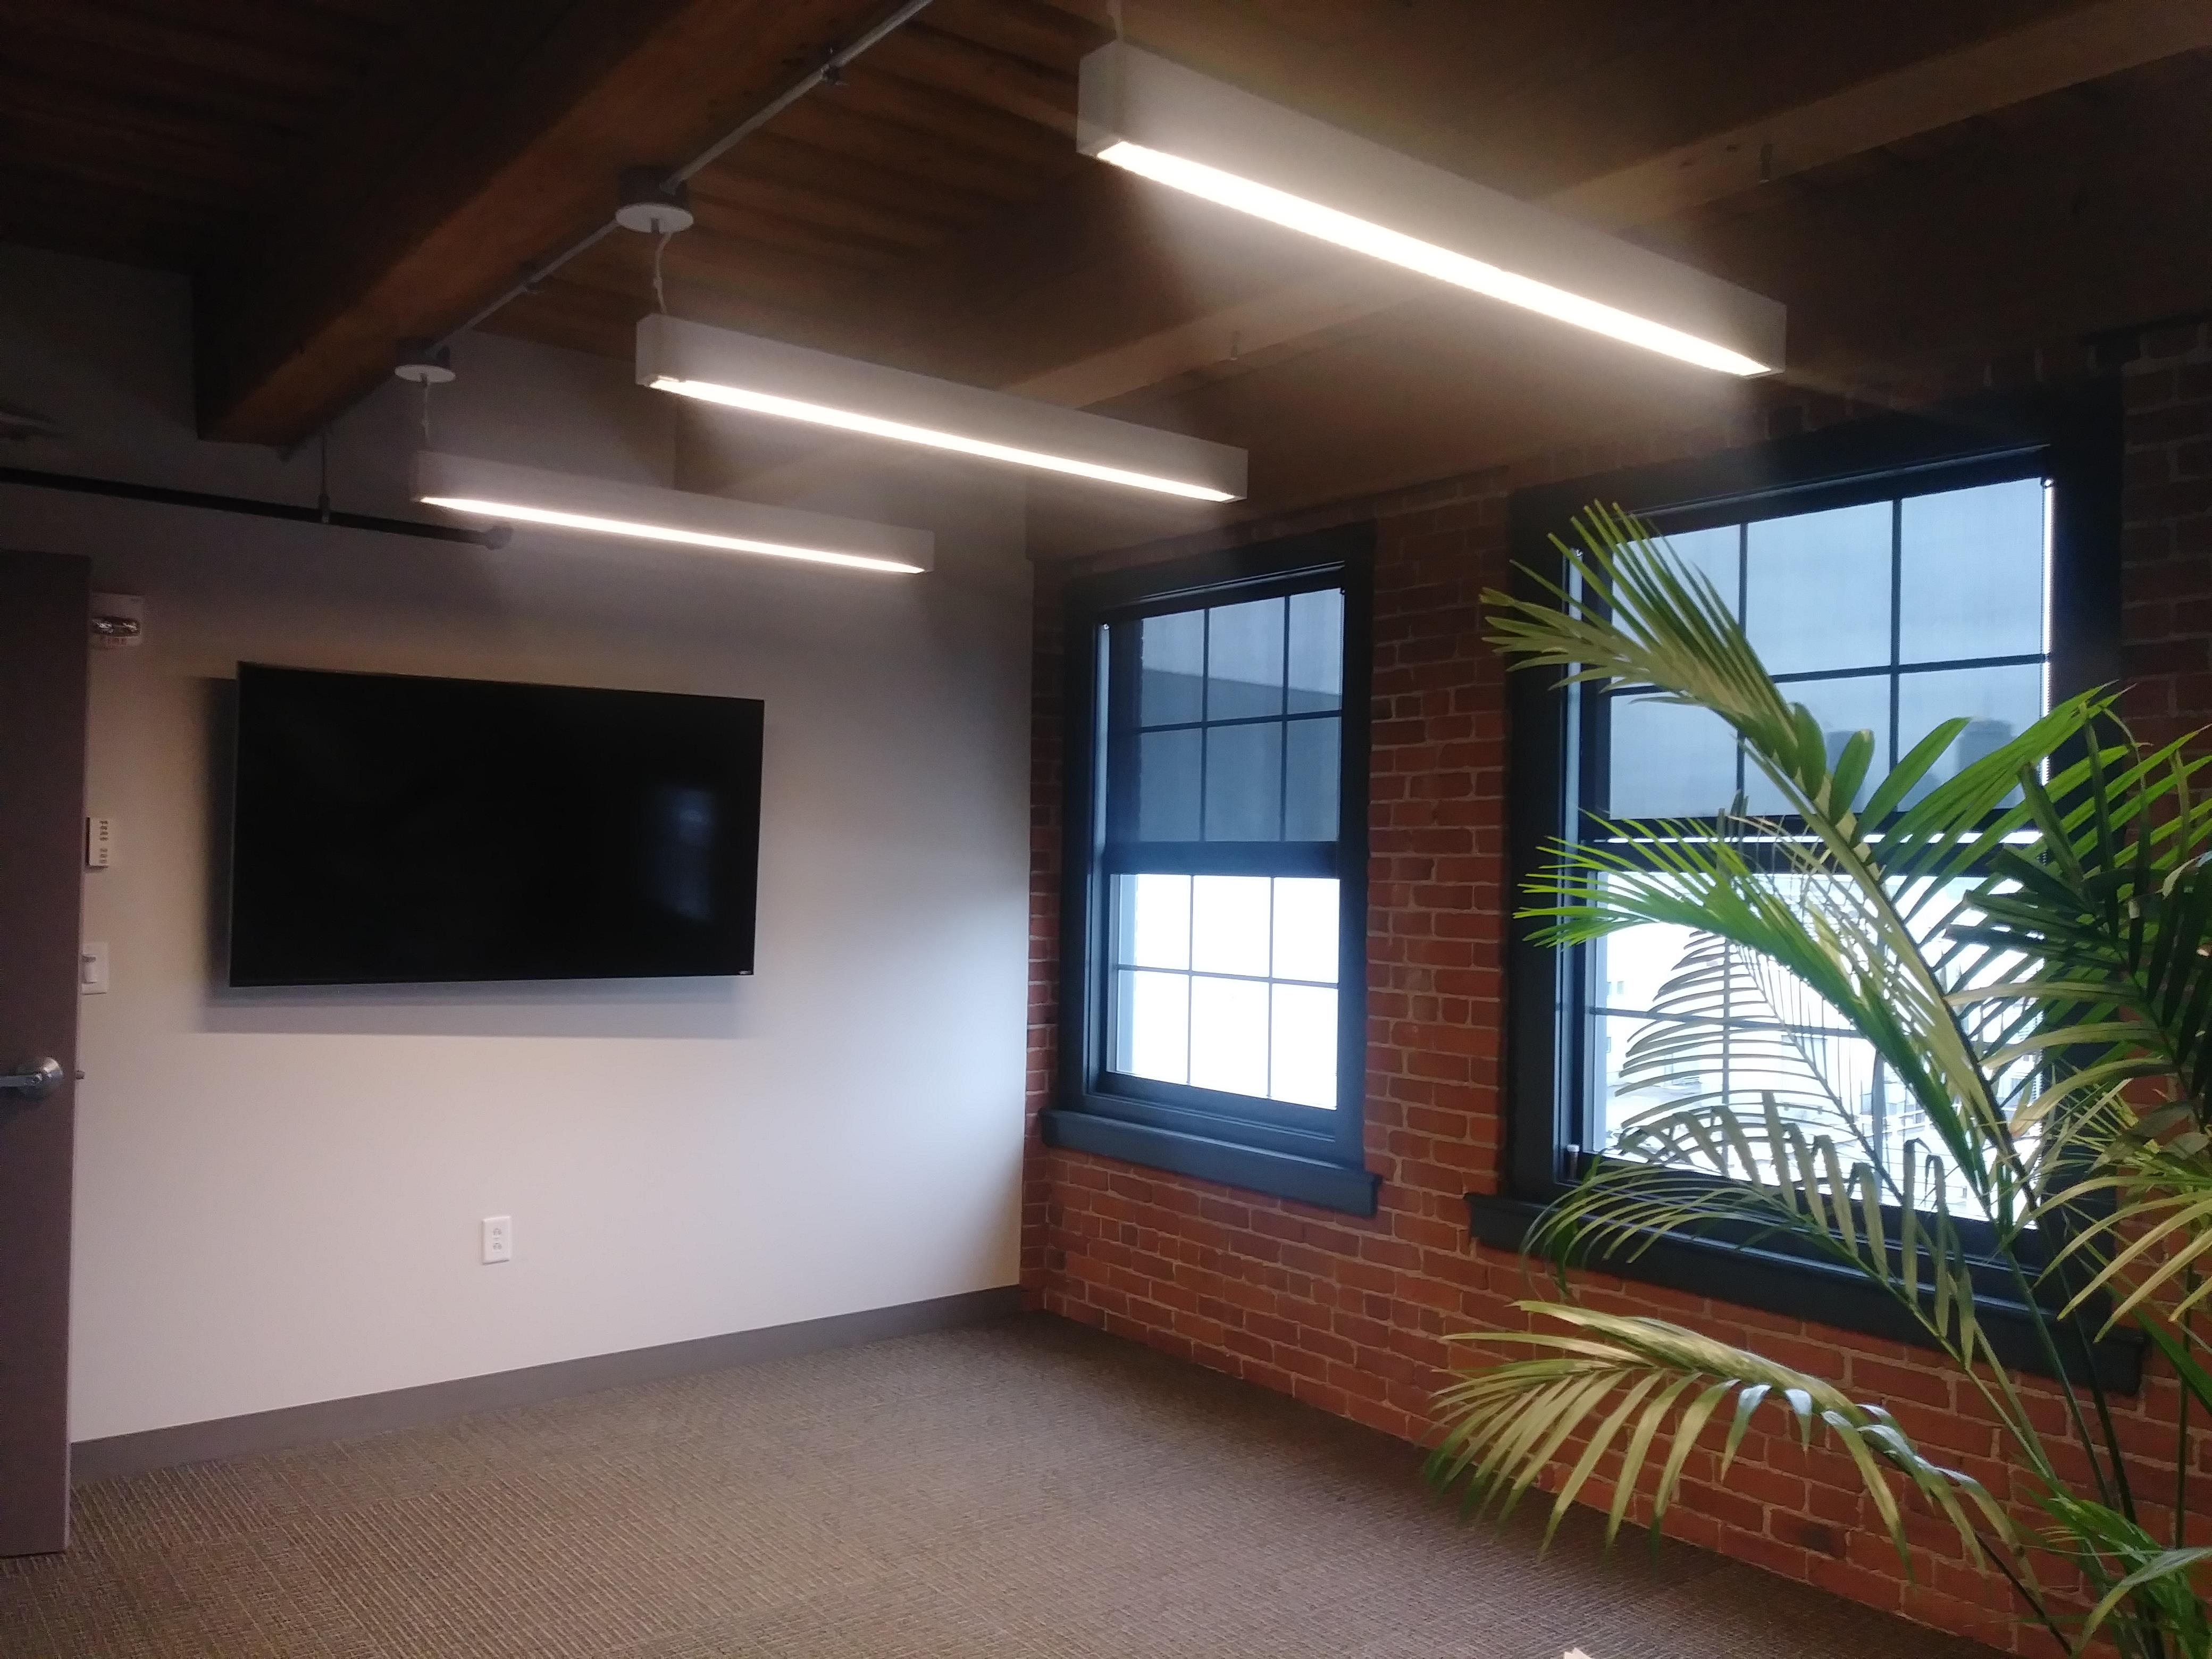 Bernett Research - Large Unfurnished S. Boston Space